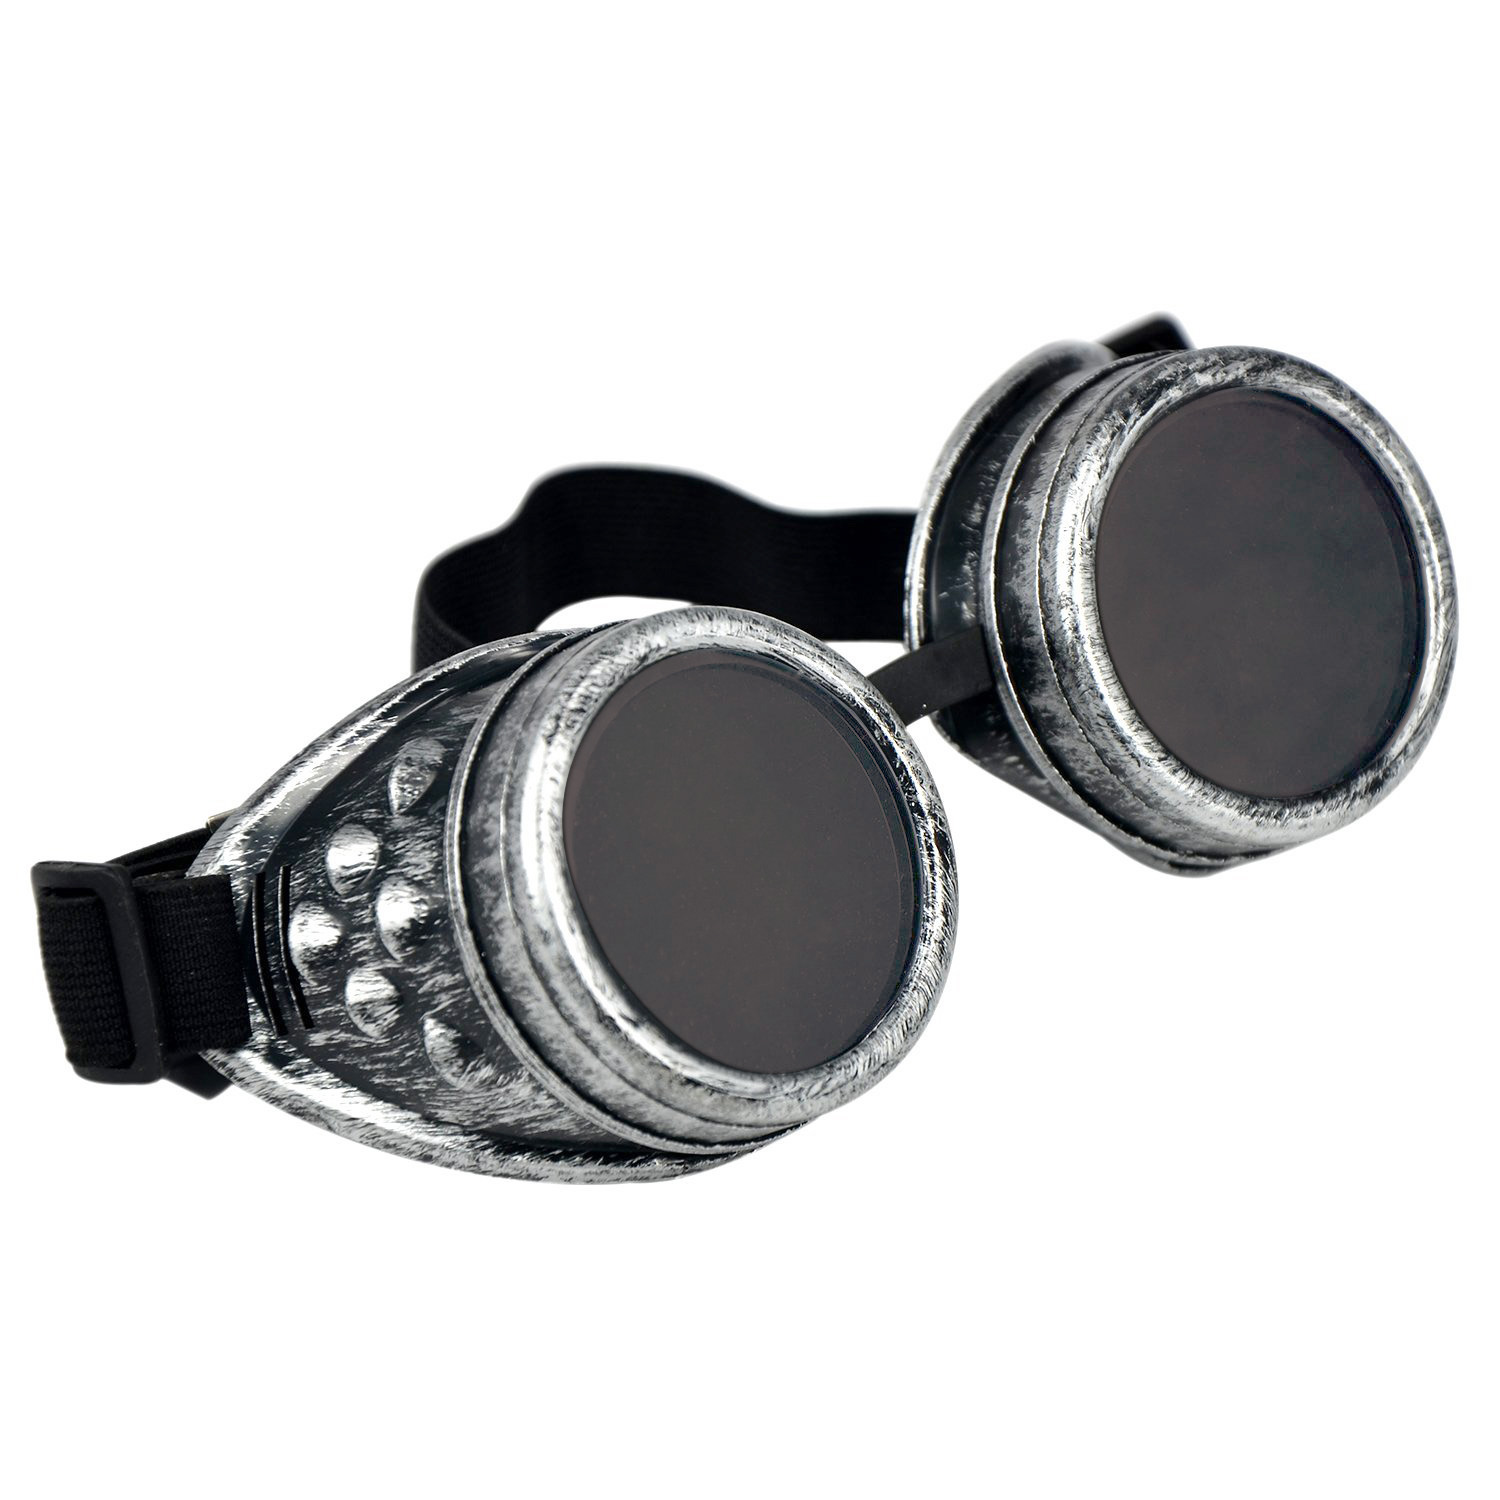 Rustic Vintage Cyber Goggles Steampunk Glasses Welding Gothic Cosplay Black